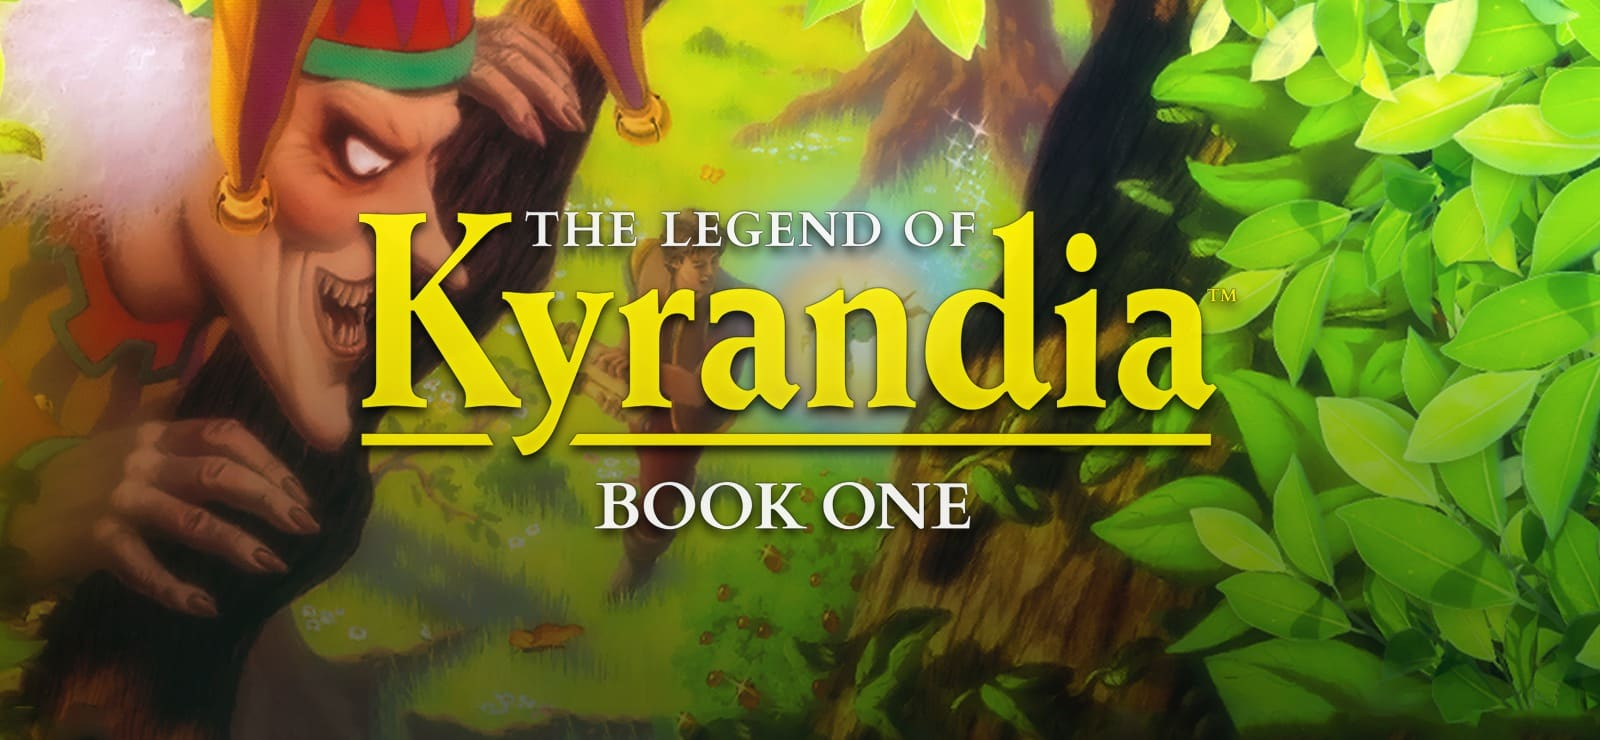 The Legend Of Kyrandia (Book One) varies-with-device